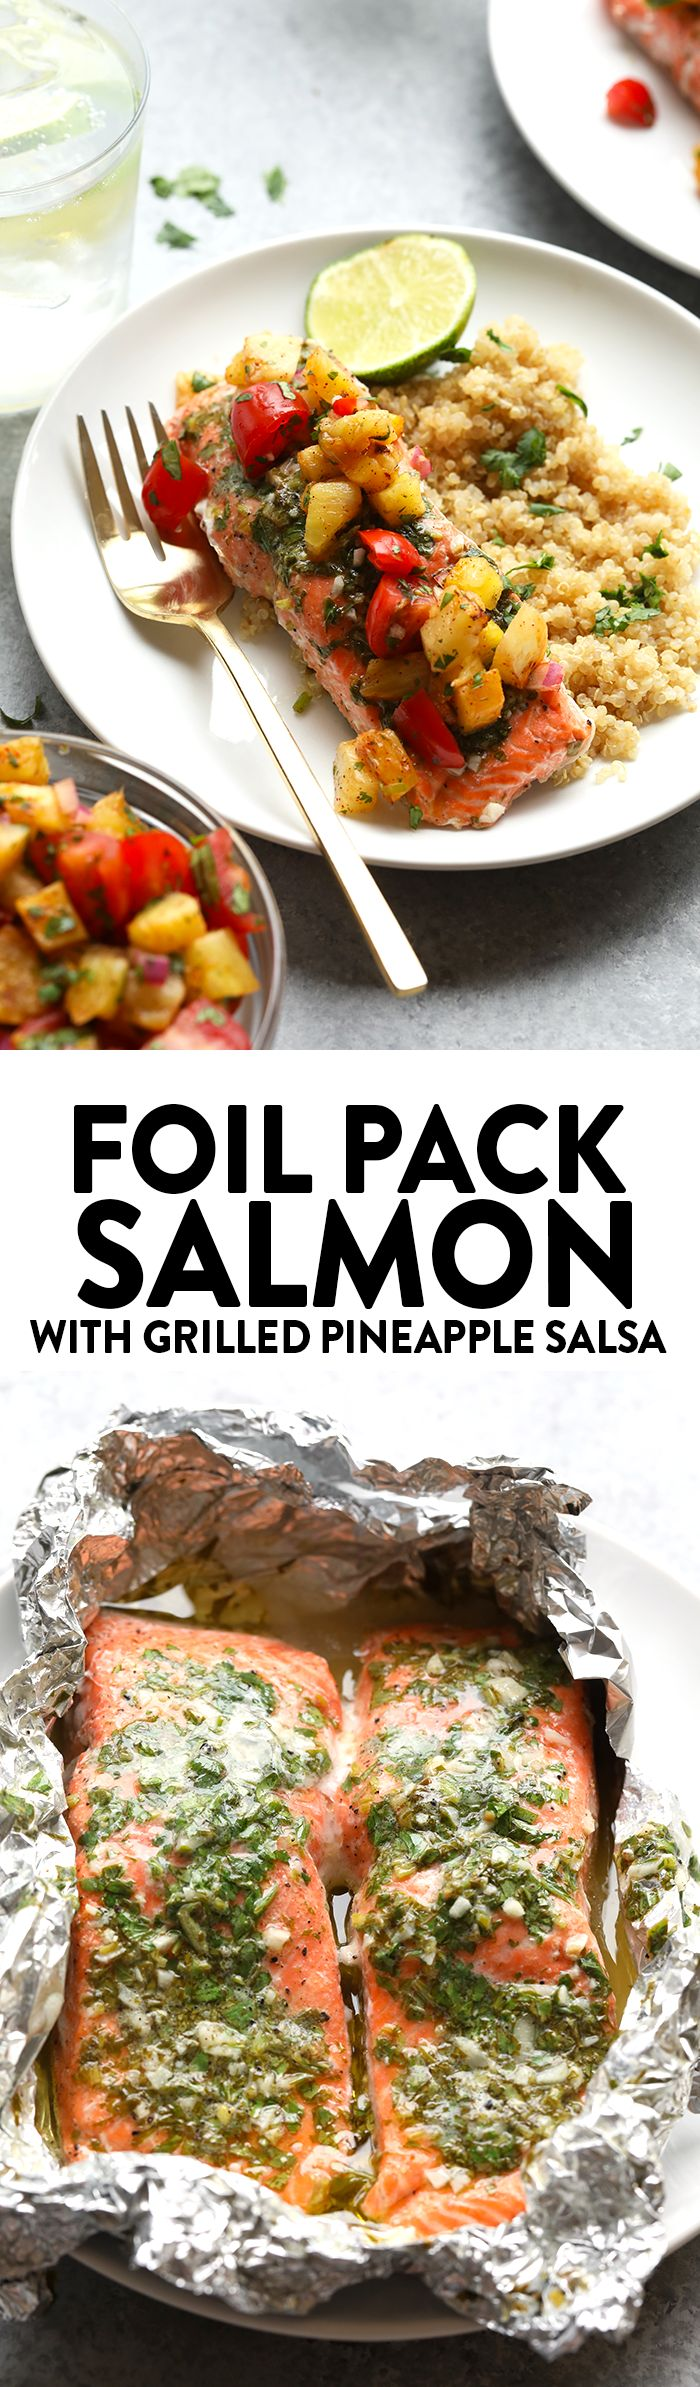 Foil Pack Salmon With Grilled Pineapple Salsa